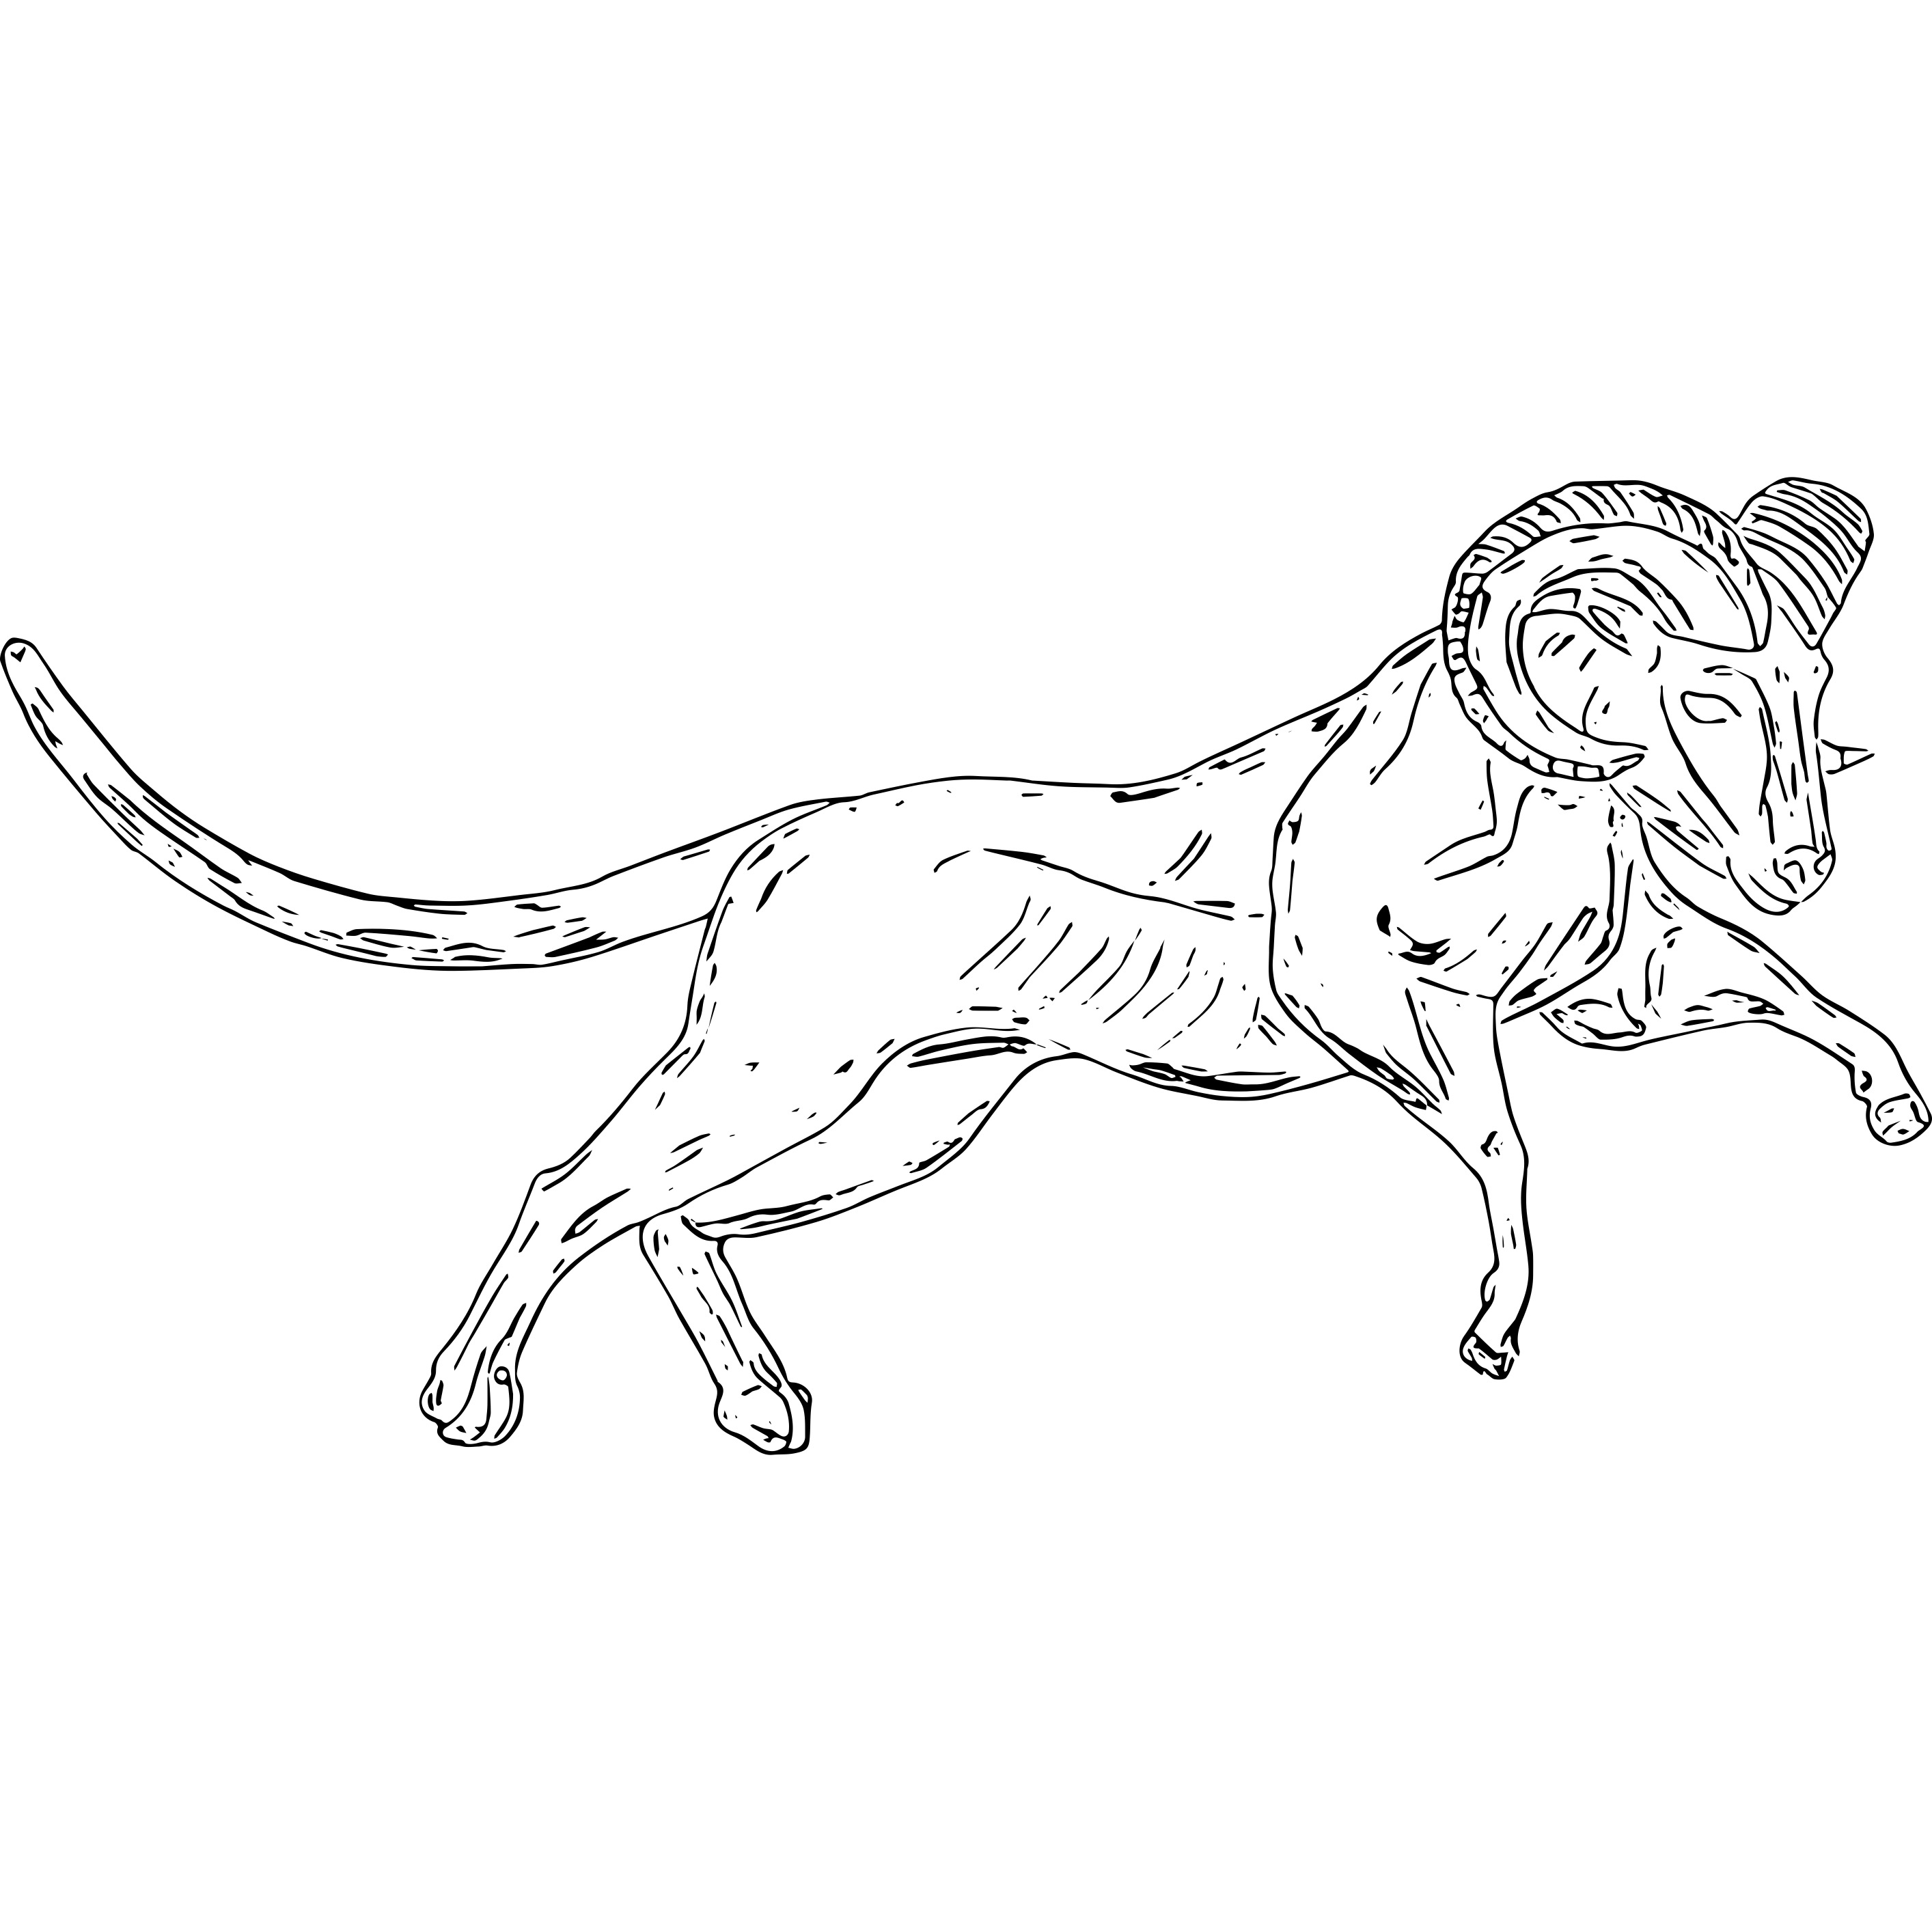 Cheetah.Ram_action sketch